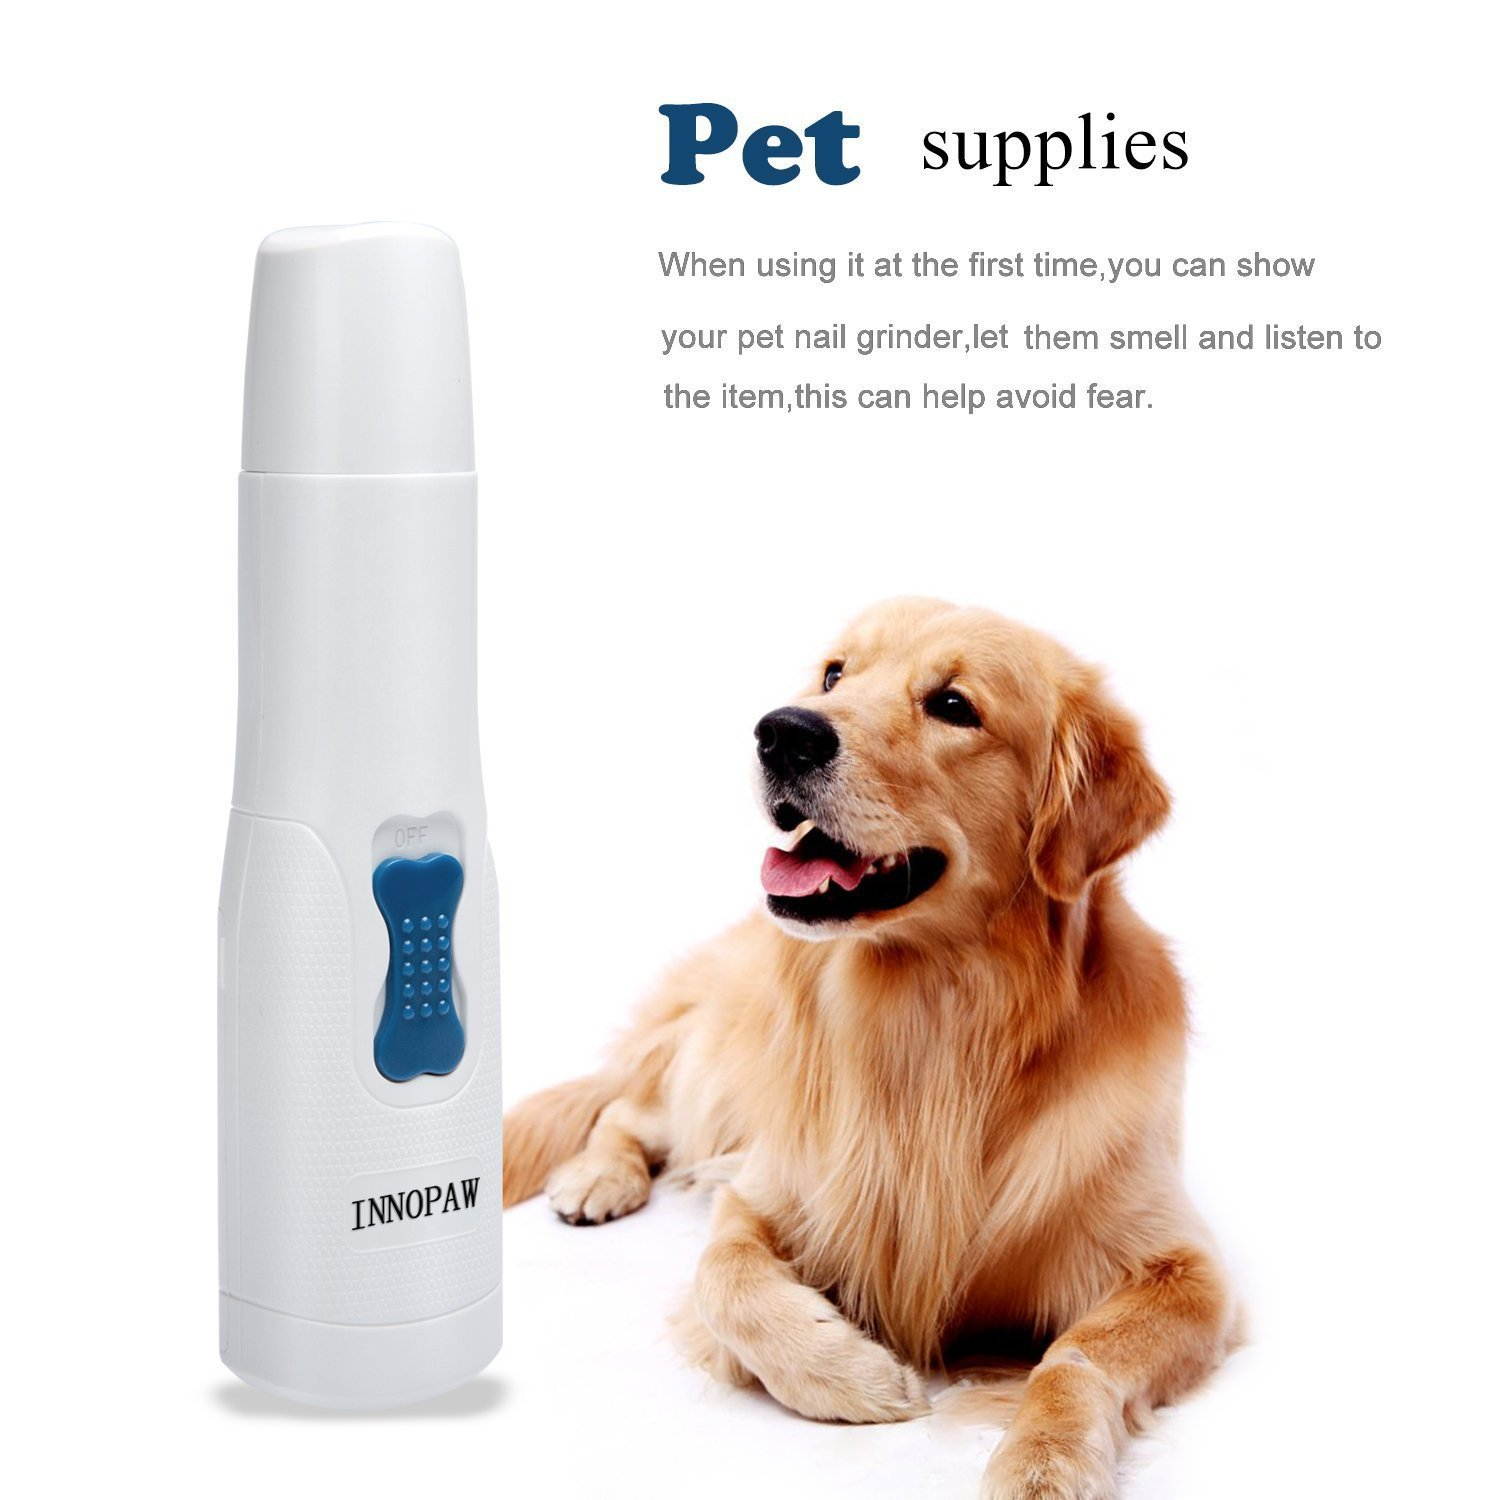 INNOPAW Dog Nail Grinder, Electric Pet Nail Grinders Trimmers Gentle Paws Premium Clipper Nail Grooming Tools Best for Cats, Dogs and Other Medium & Small Pets by INNOPAW (Image #5)